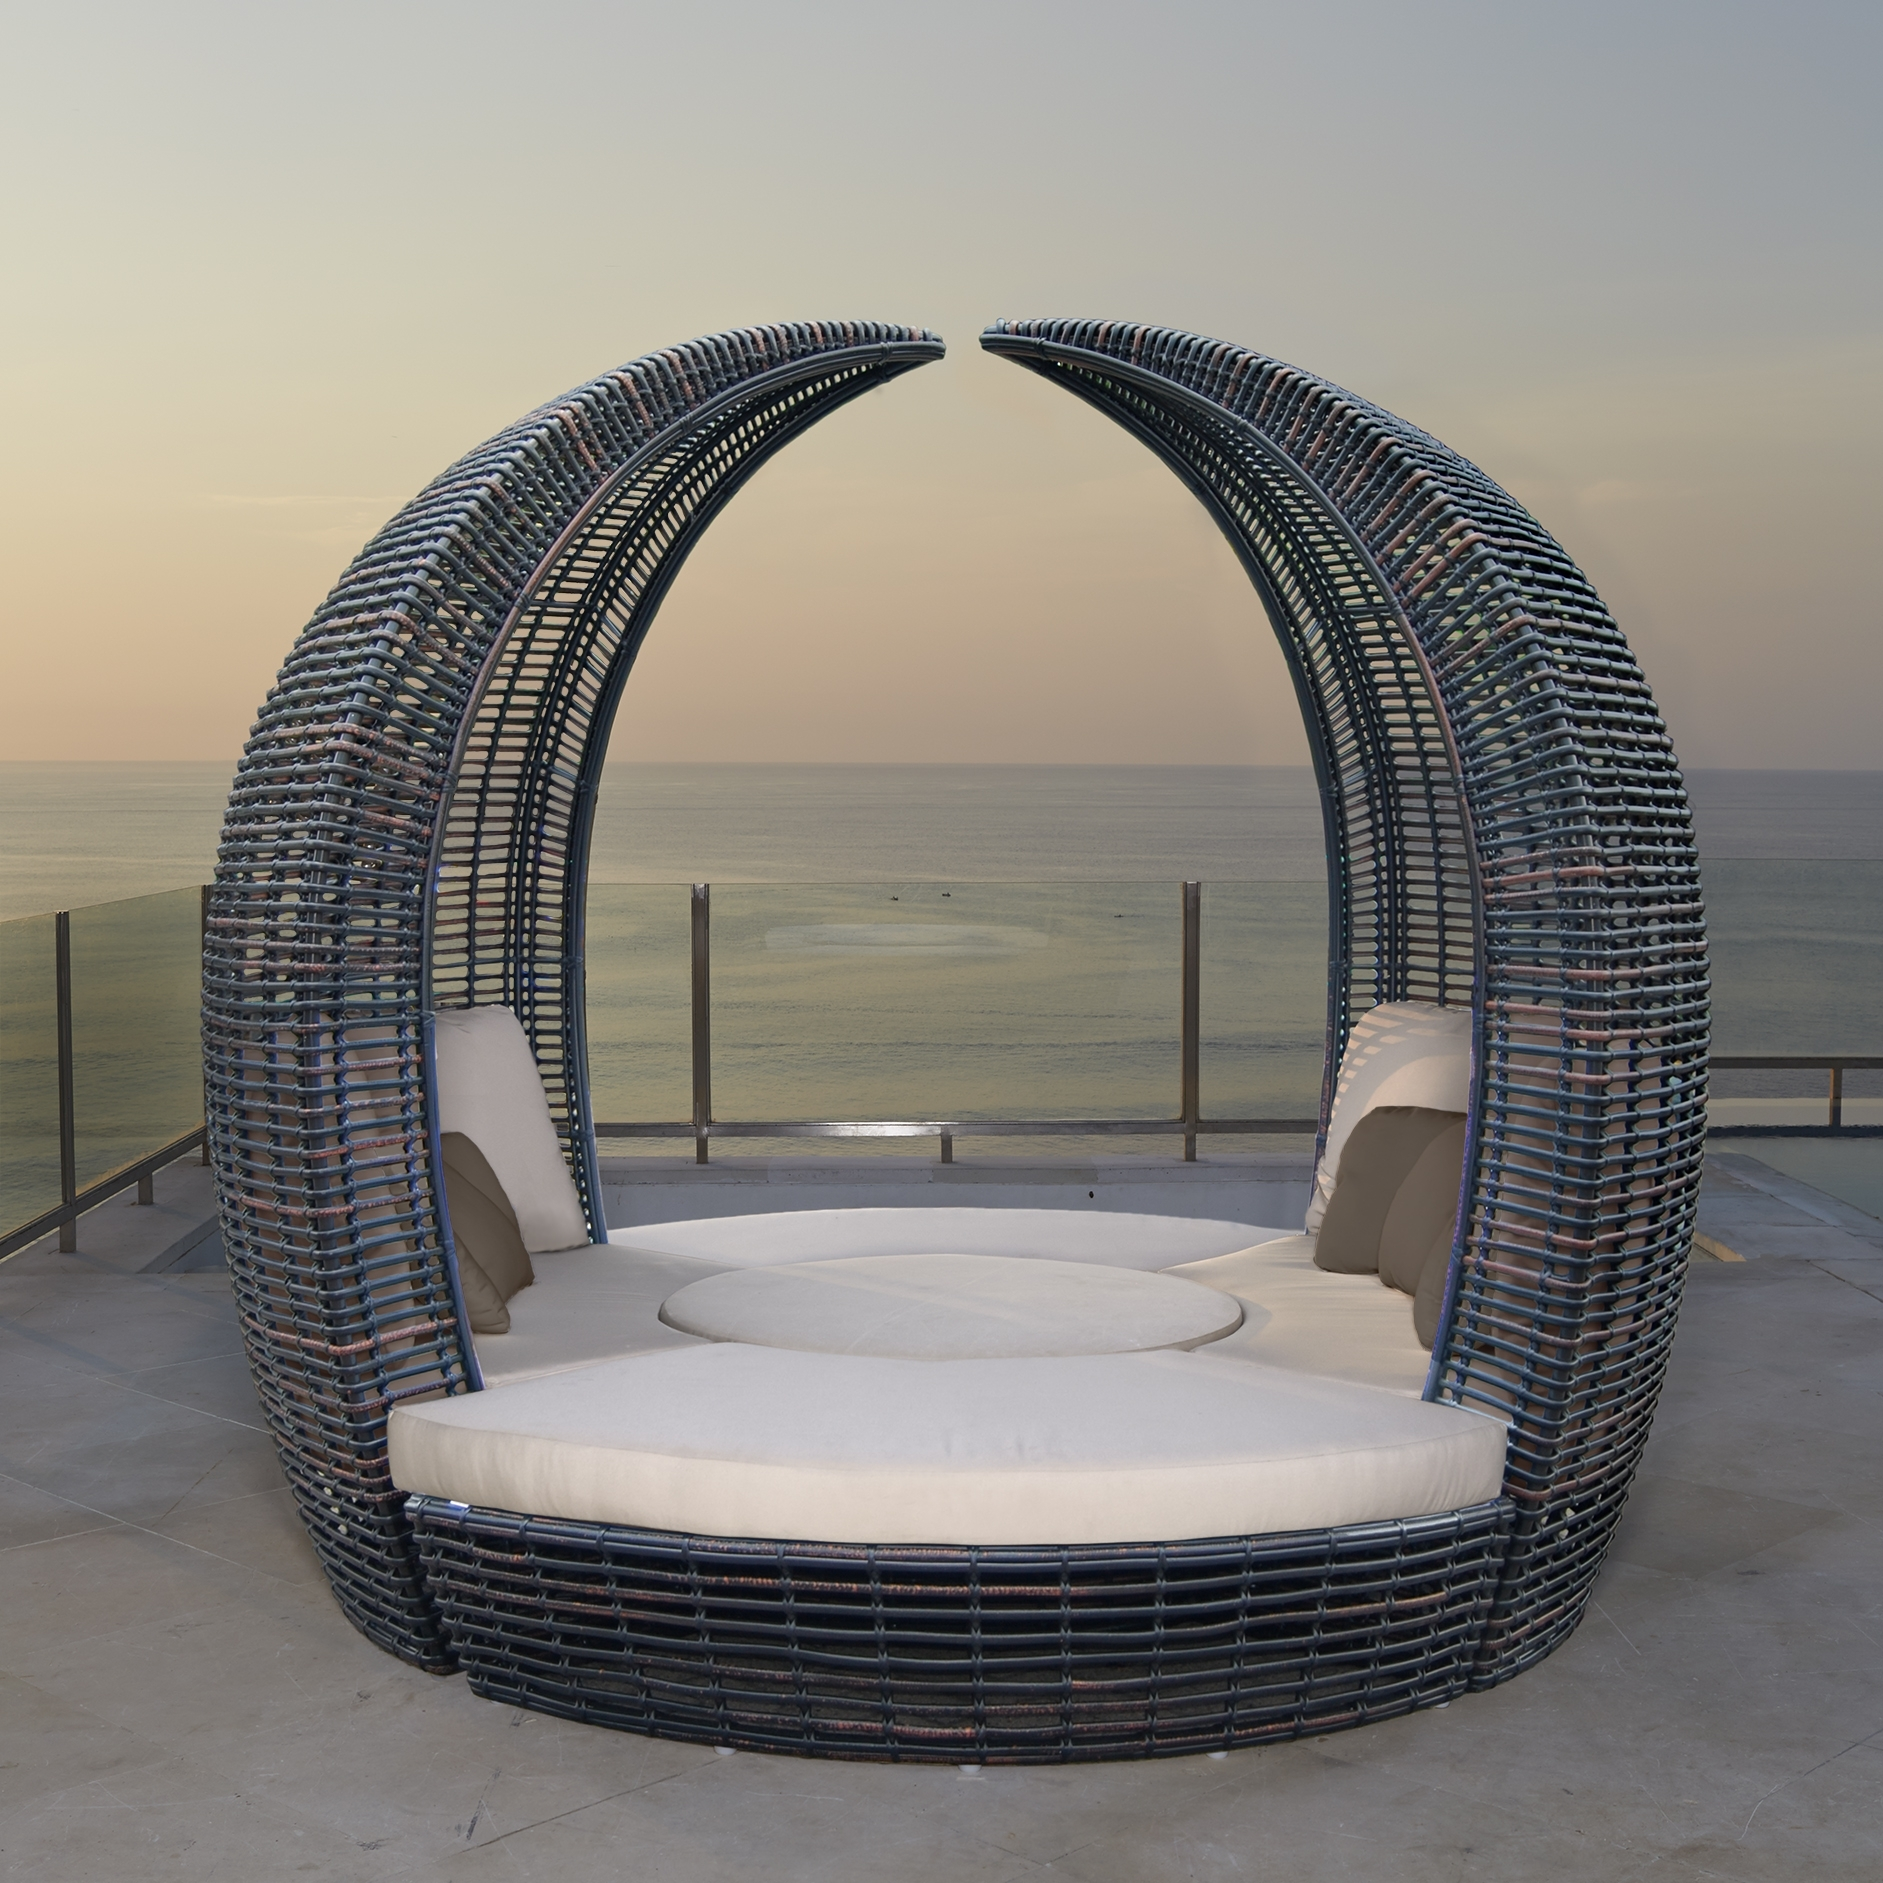 Image of: Halo Hospitality Commercial Daybed Outdoor Hospitality Furniture